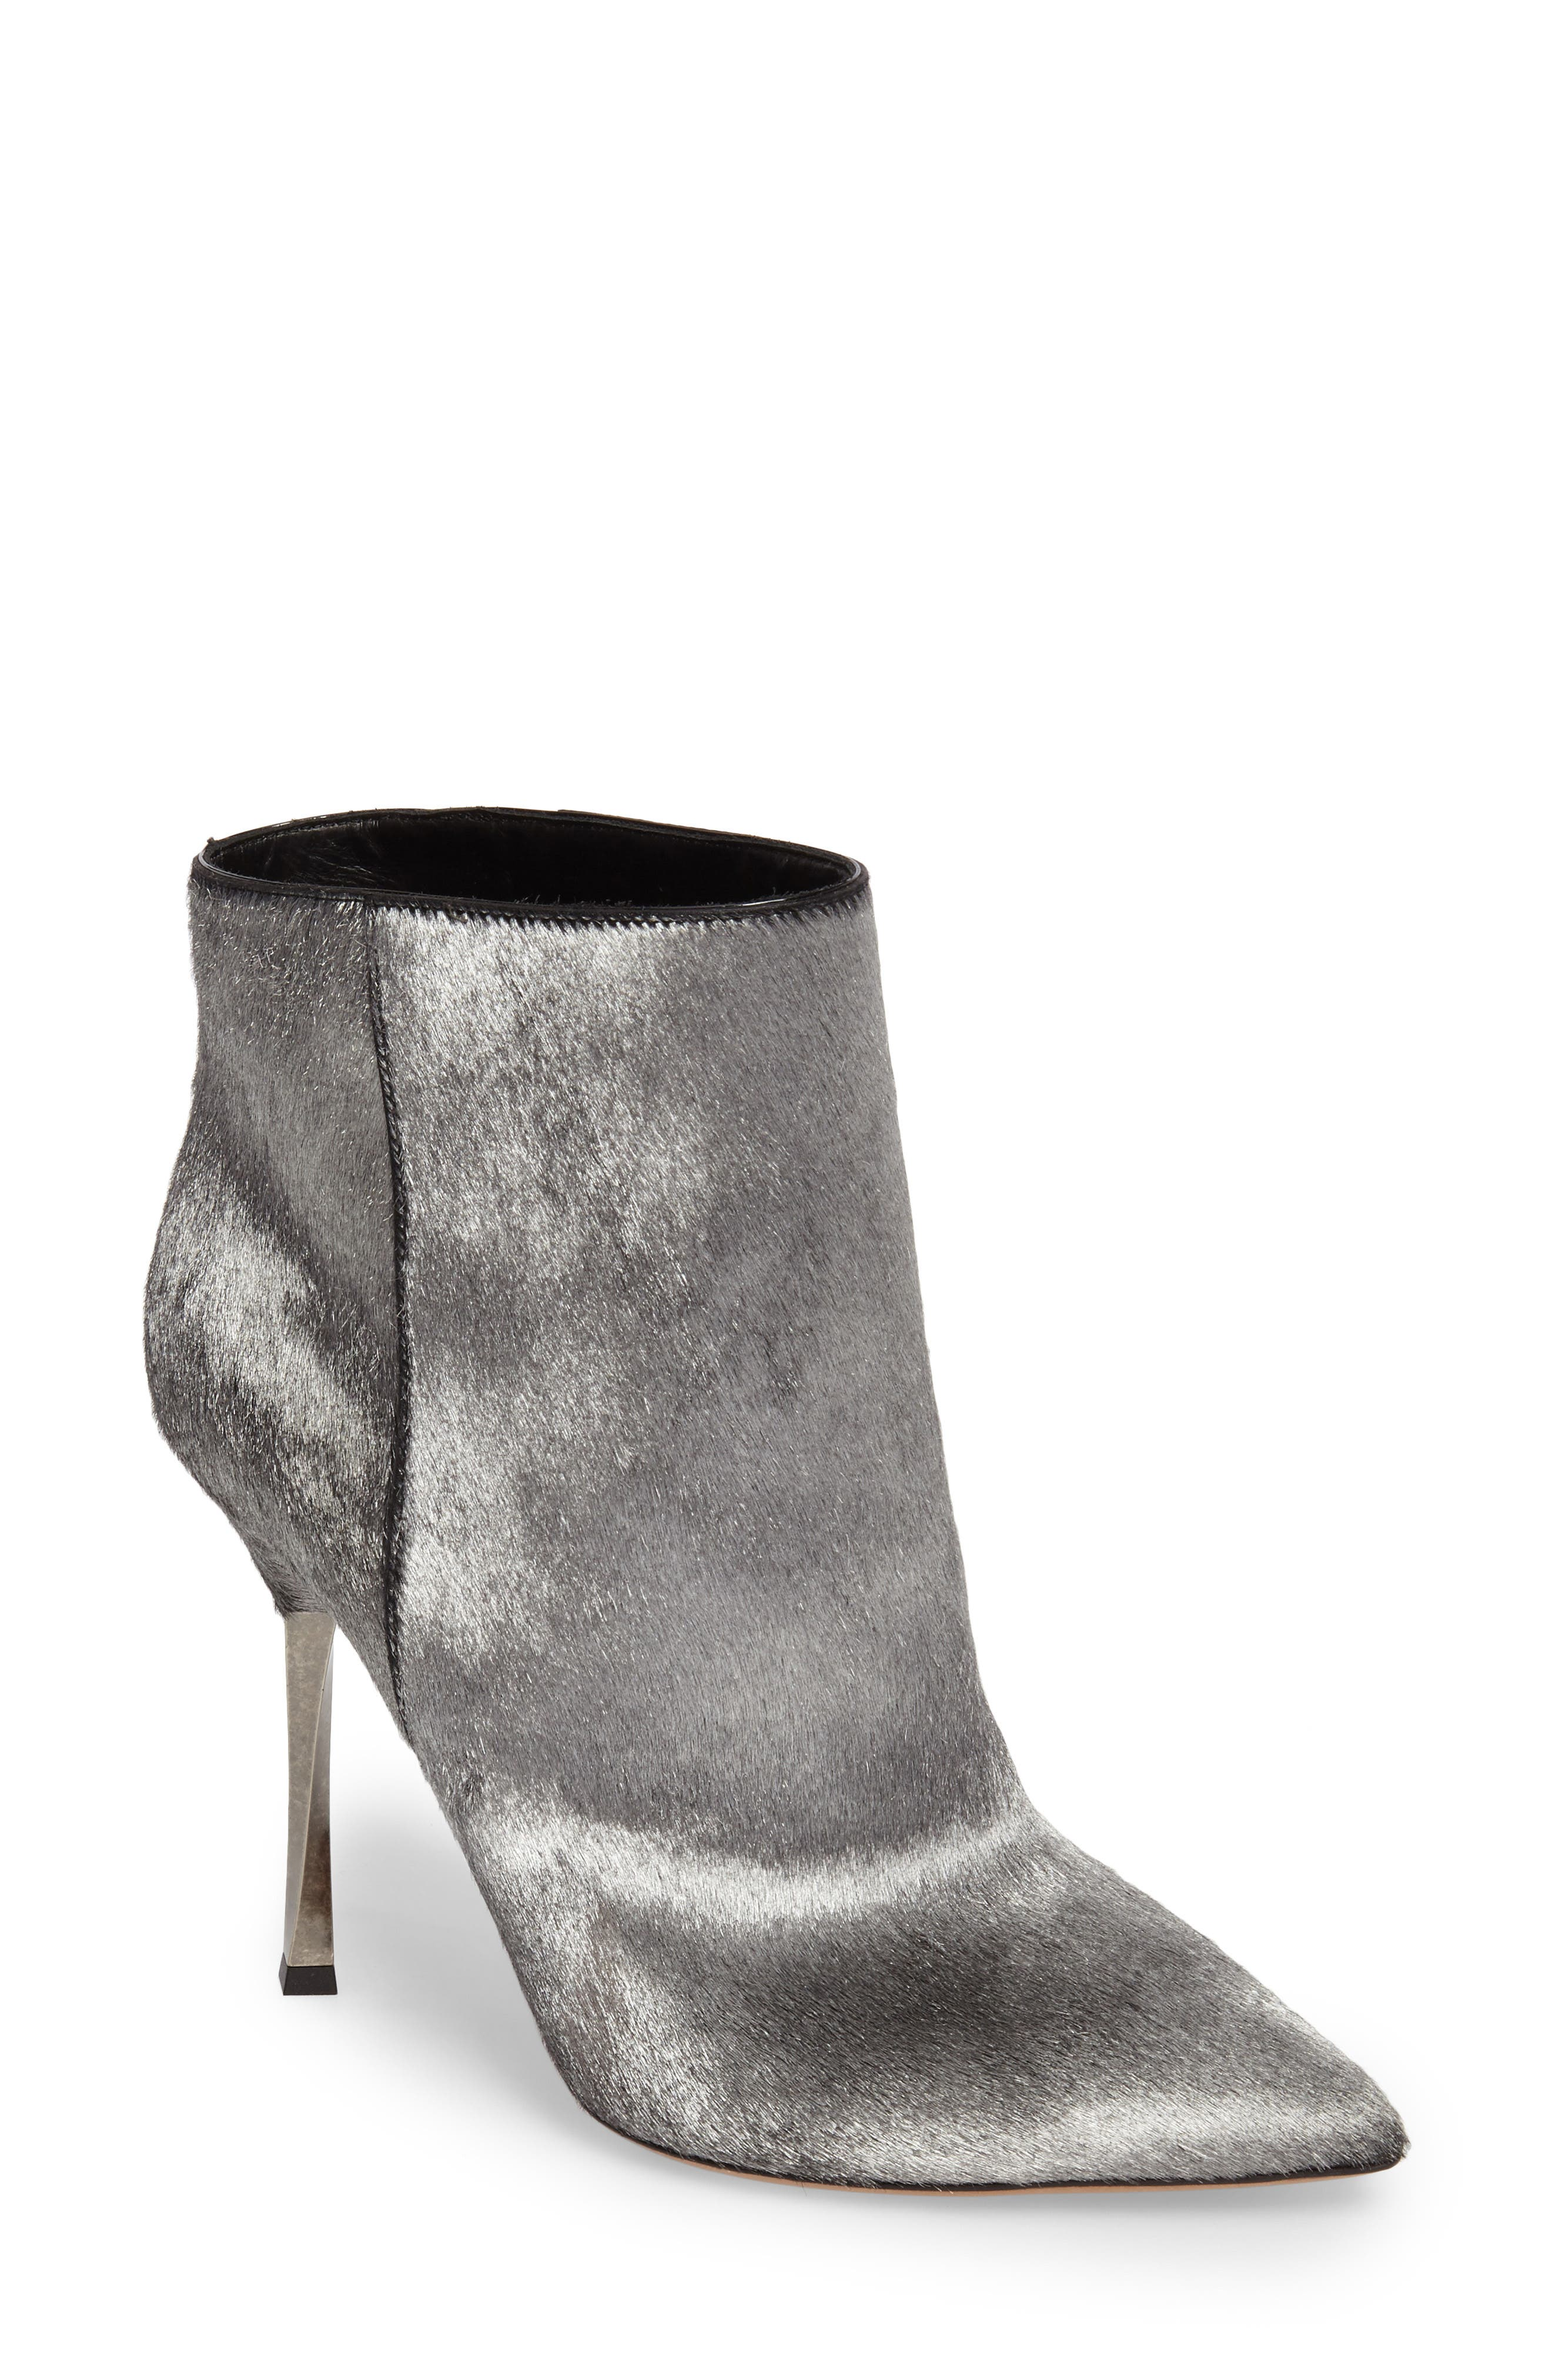 Main Image - VALENTINO GARAVANI Genuine Calf Hair Bootie (Women)